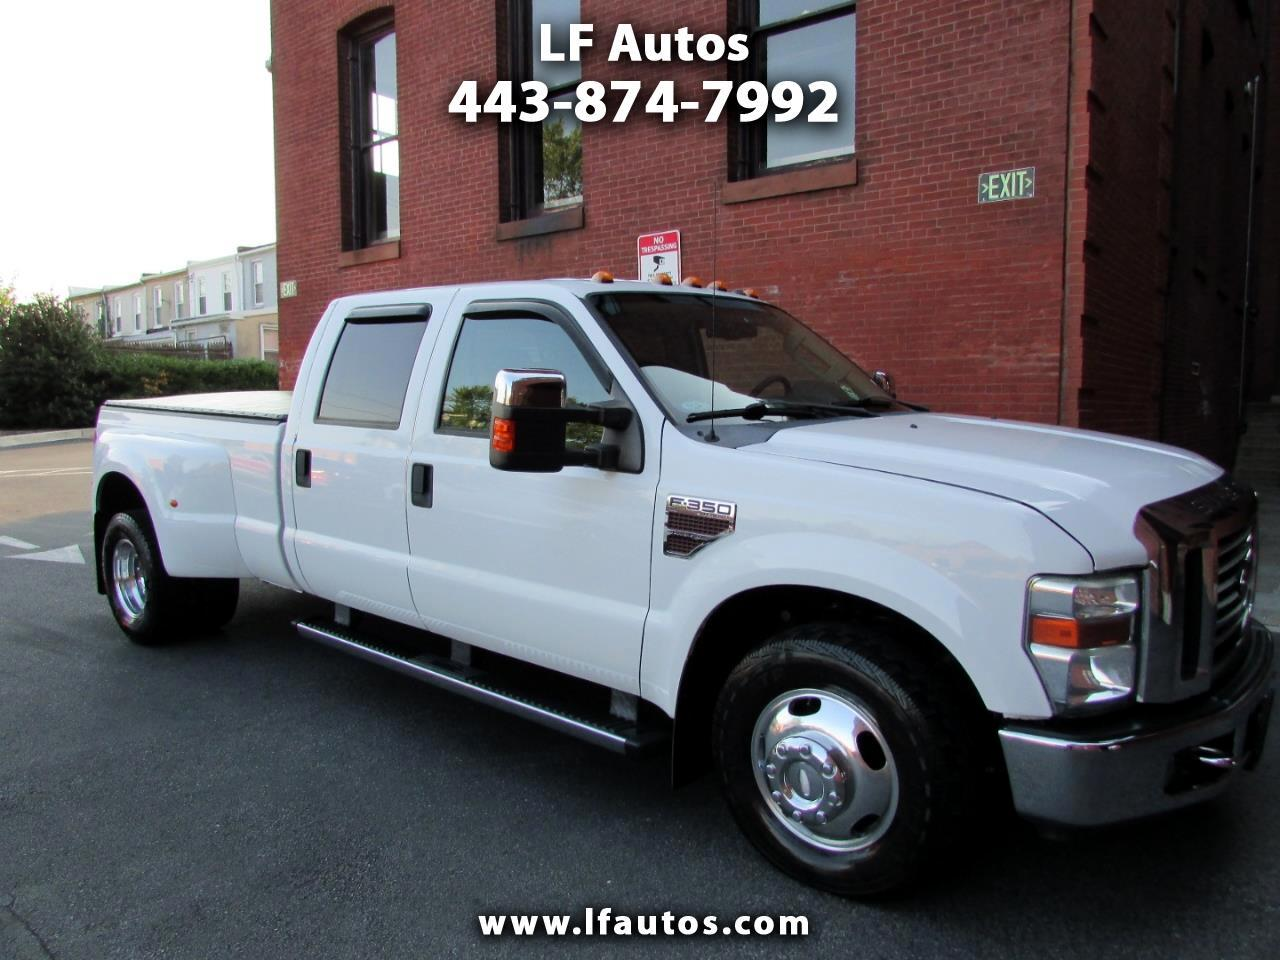 2010 Ford F-350 SD XLT Crew Cab Long Bed DRW 2WD